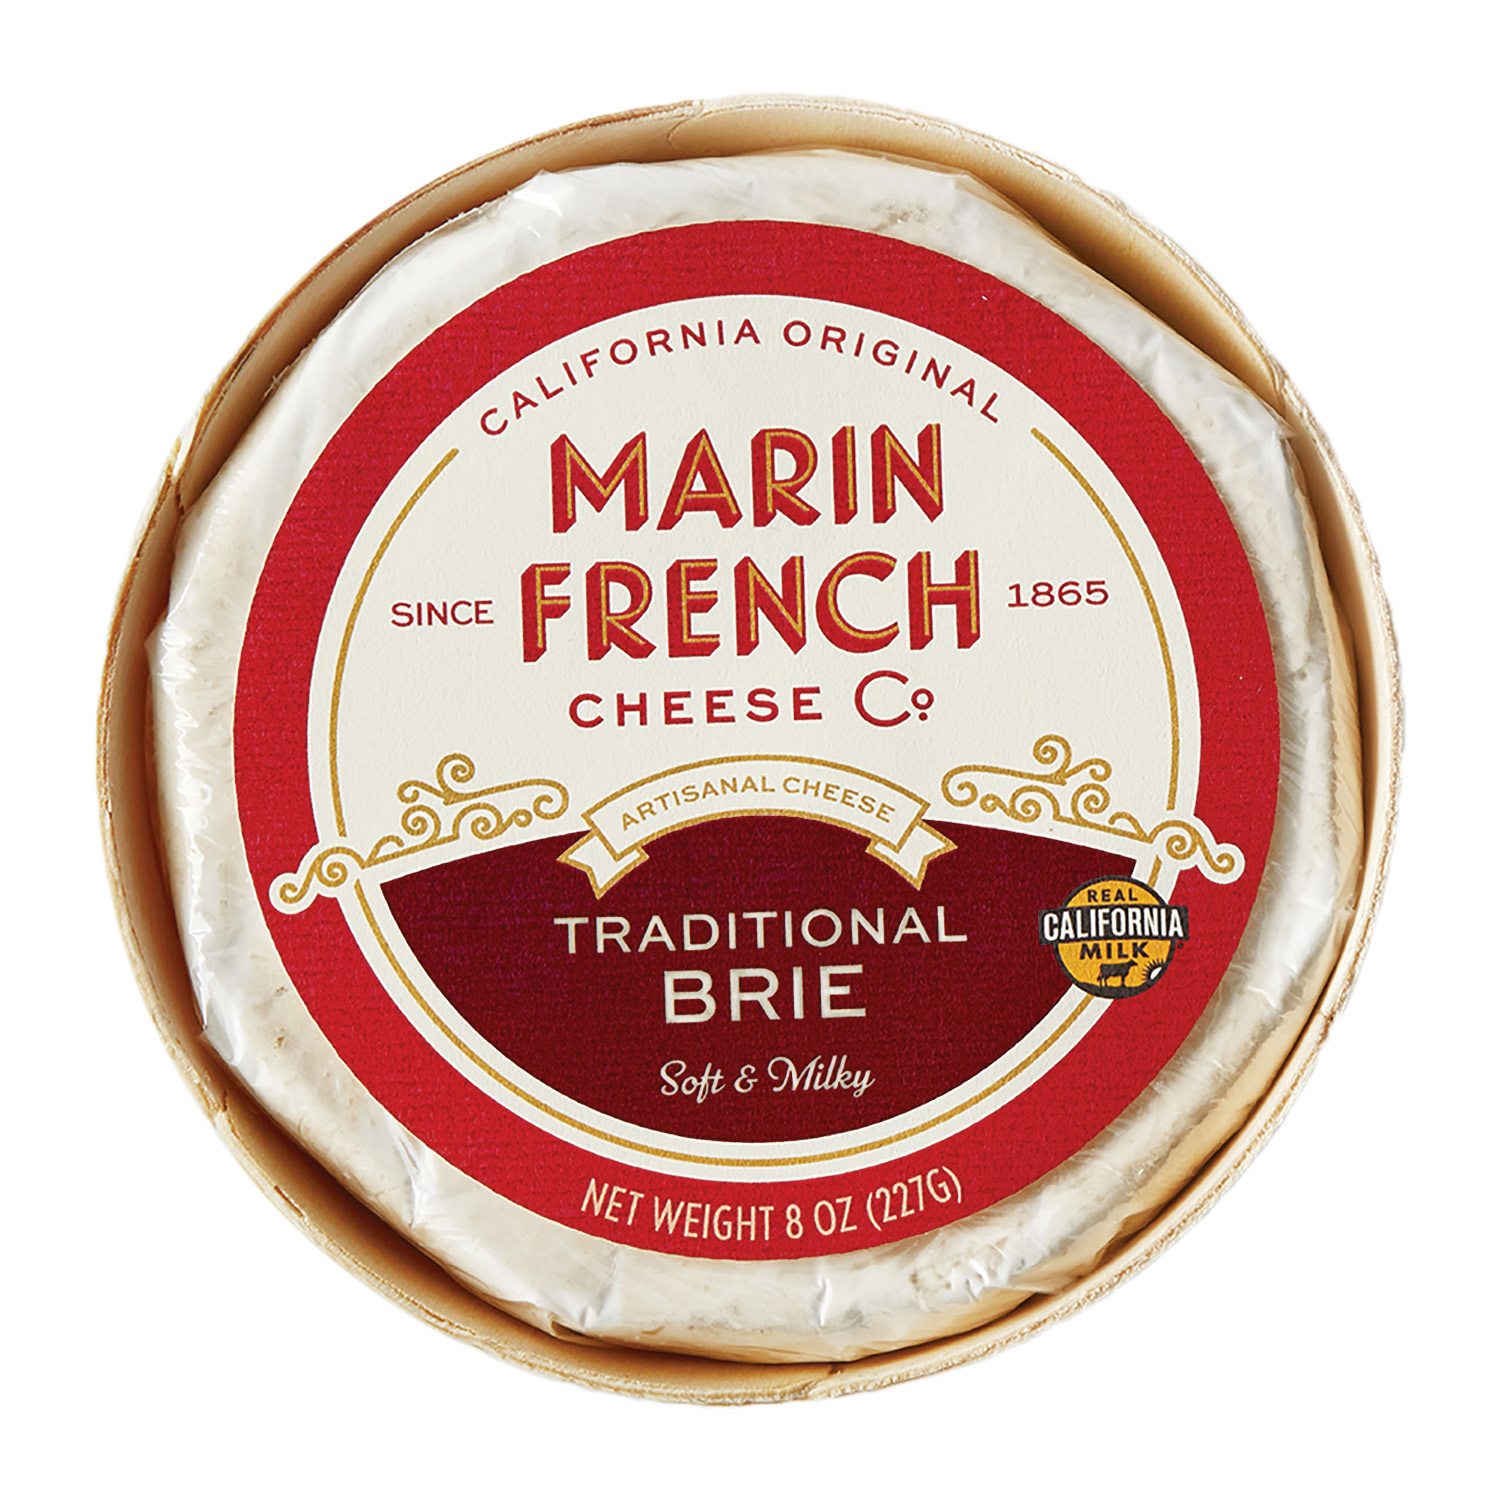 MFC_8oz Traditional Brie Front Label_High Res